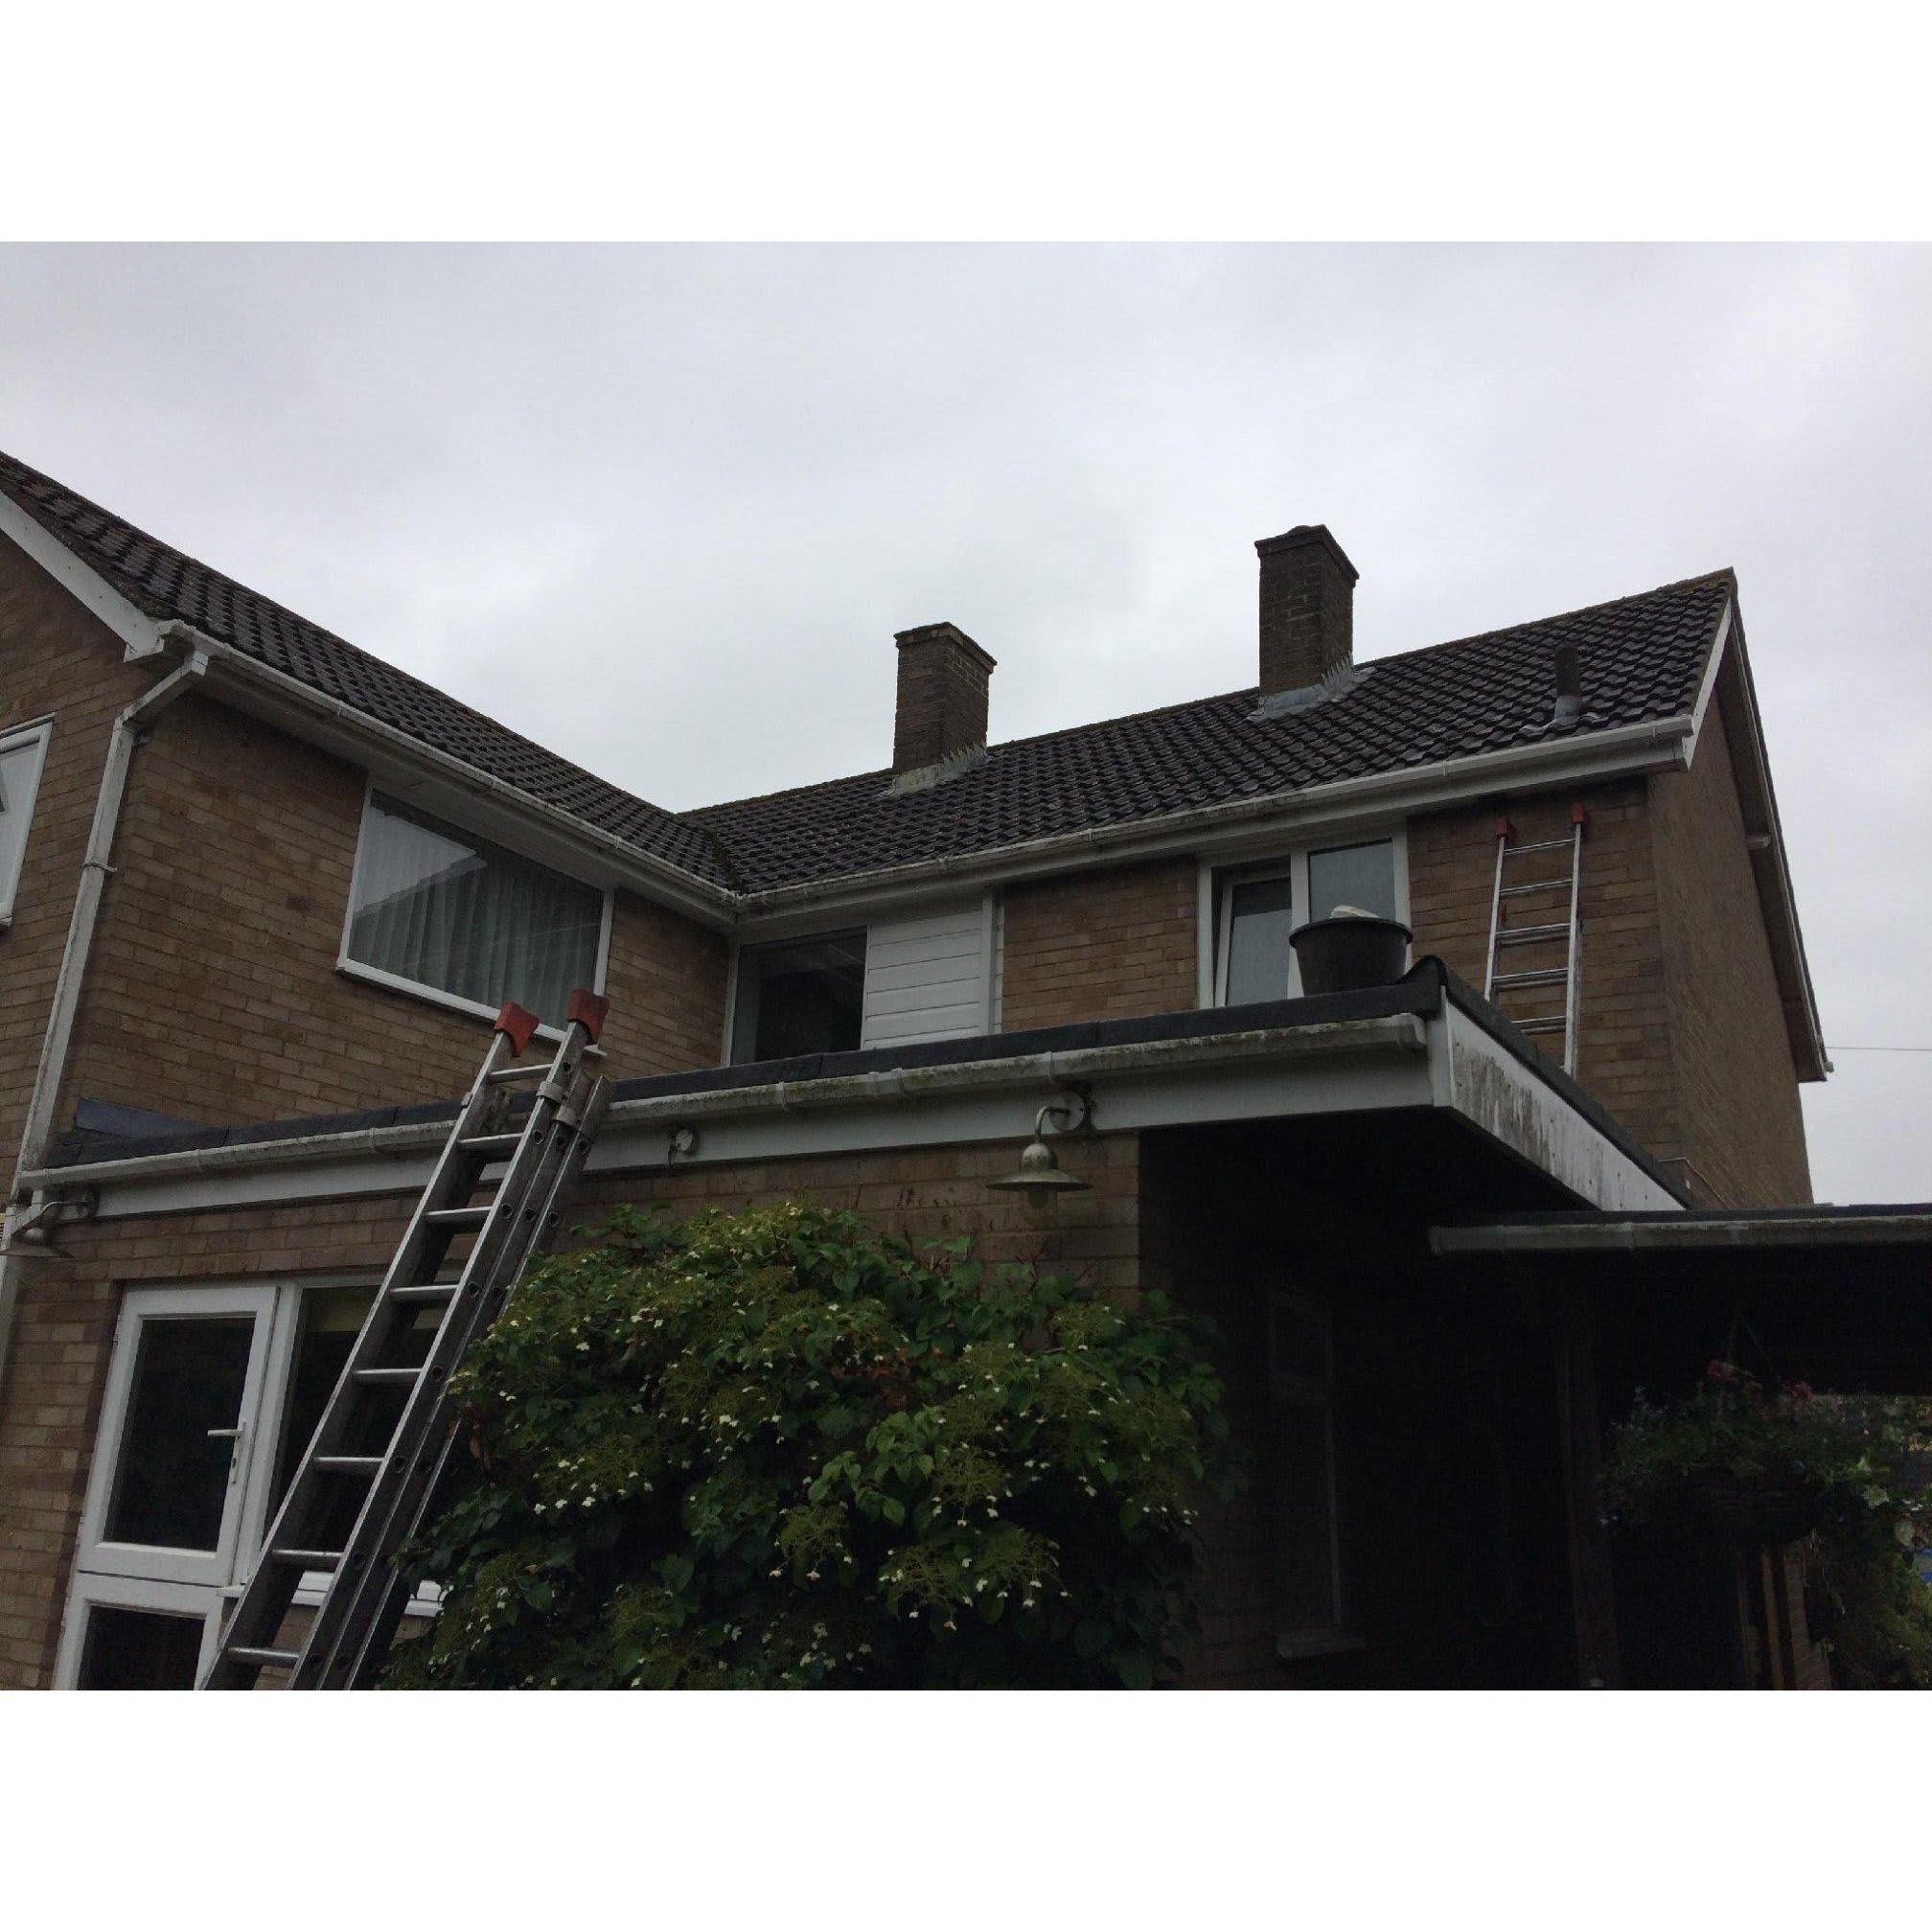 Complete Guttering Services - St. Albans, Hertfordshire AL4 8TA - 07941 437504 | ShowMeLocal.com